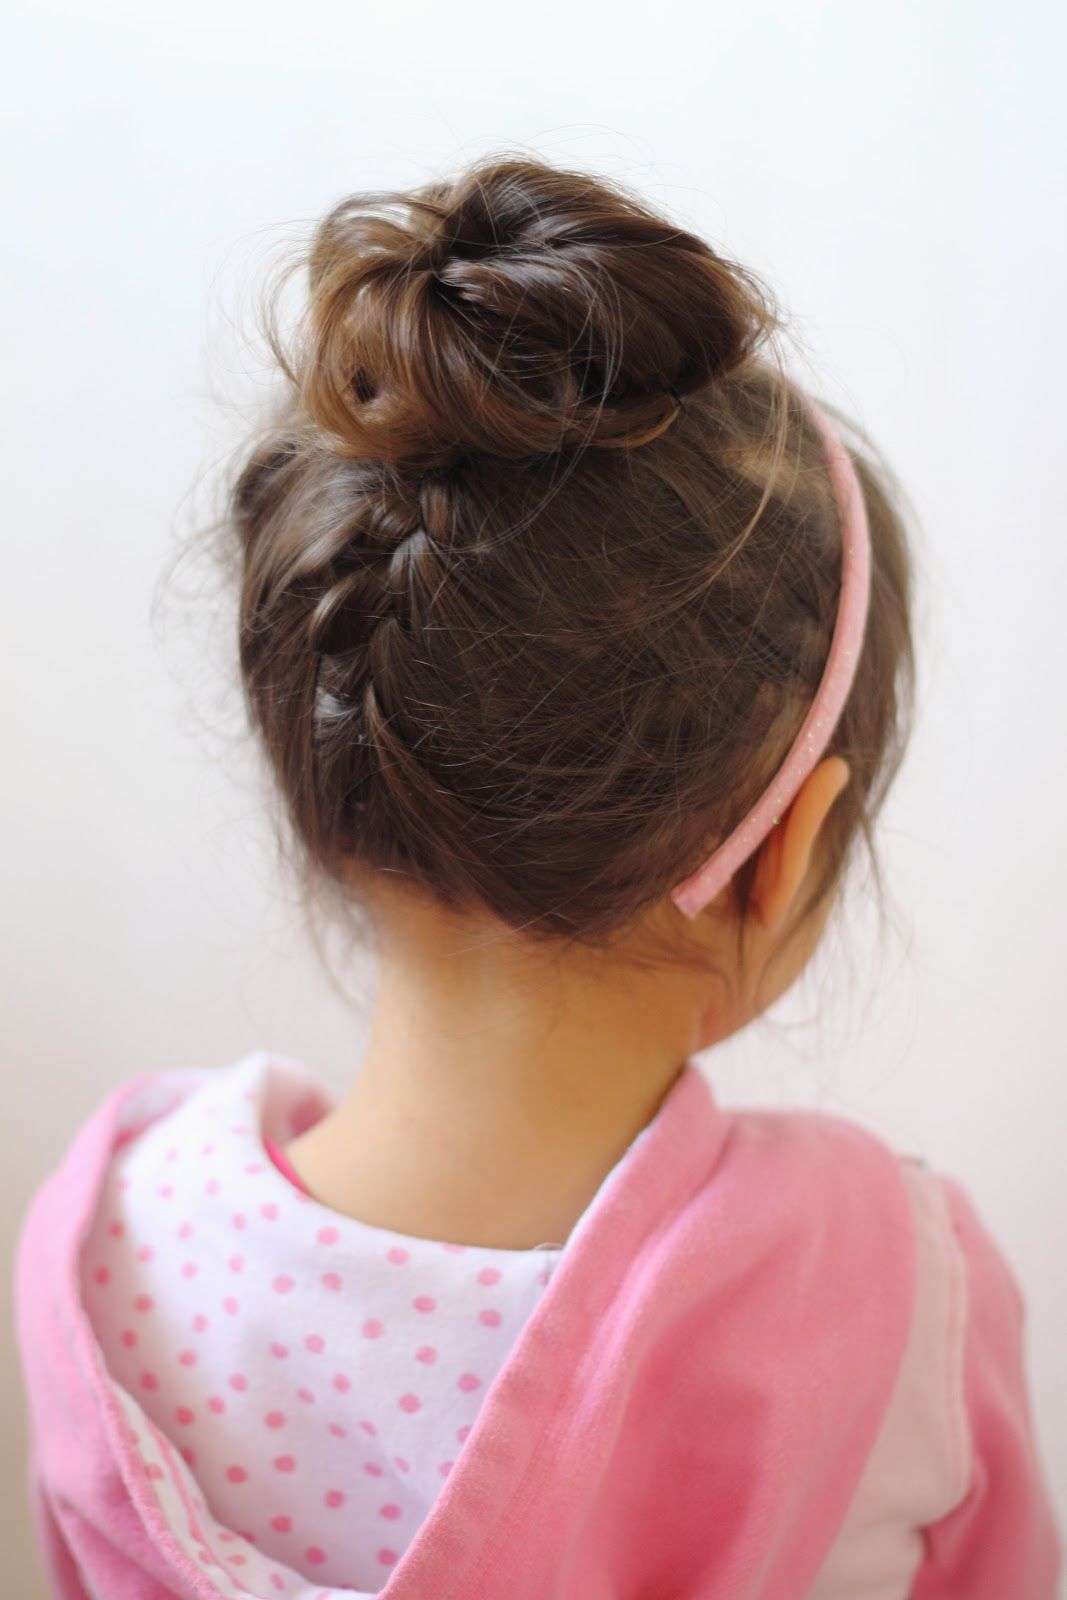 14 cute and lovely hairstyles for little girls | sock bun